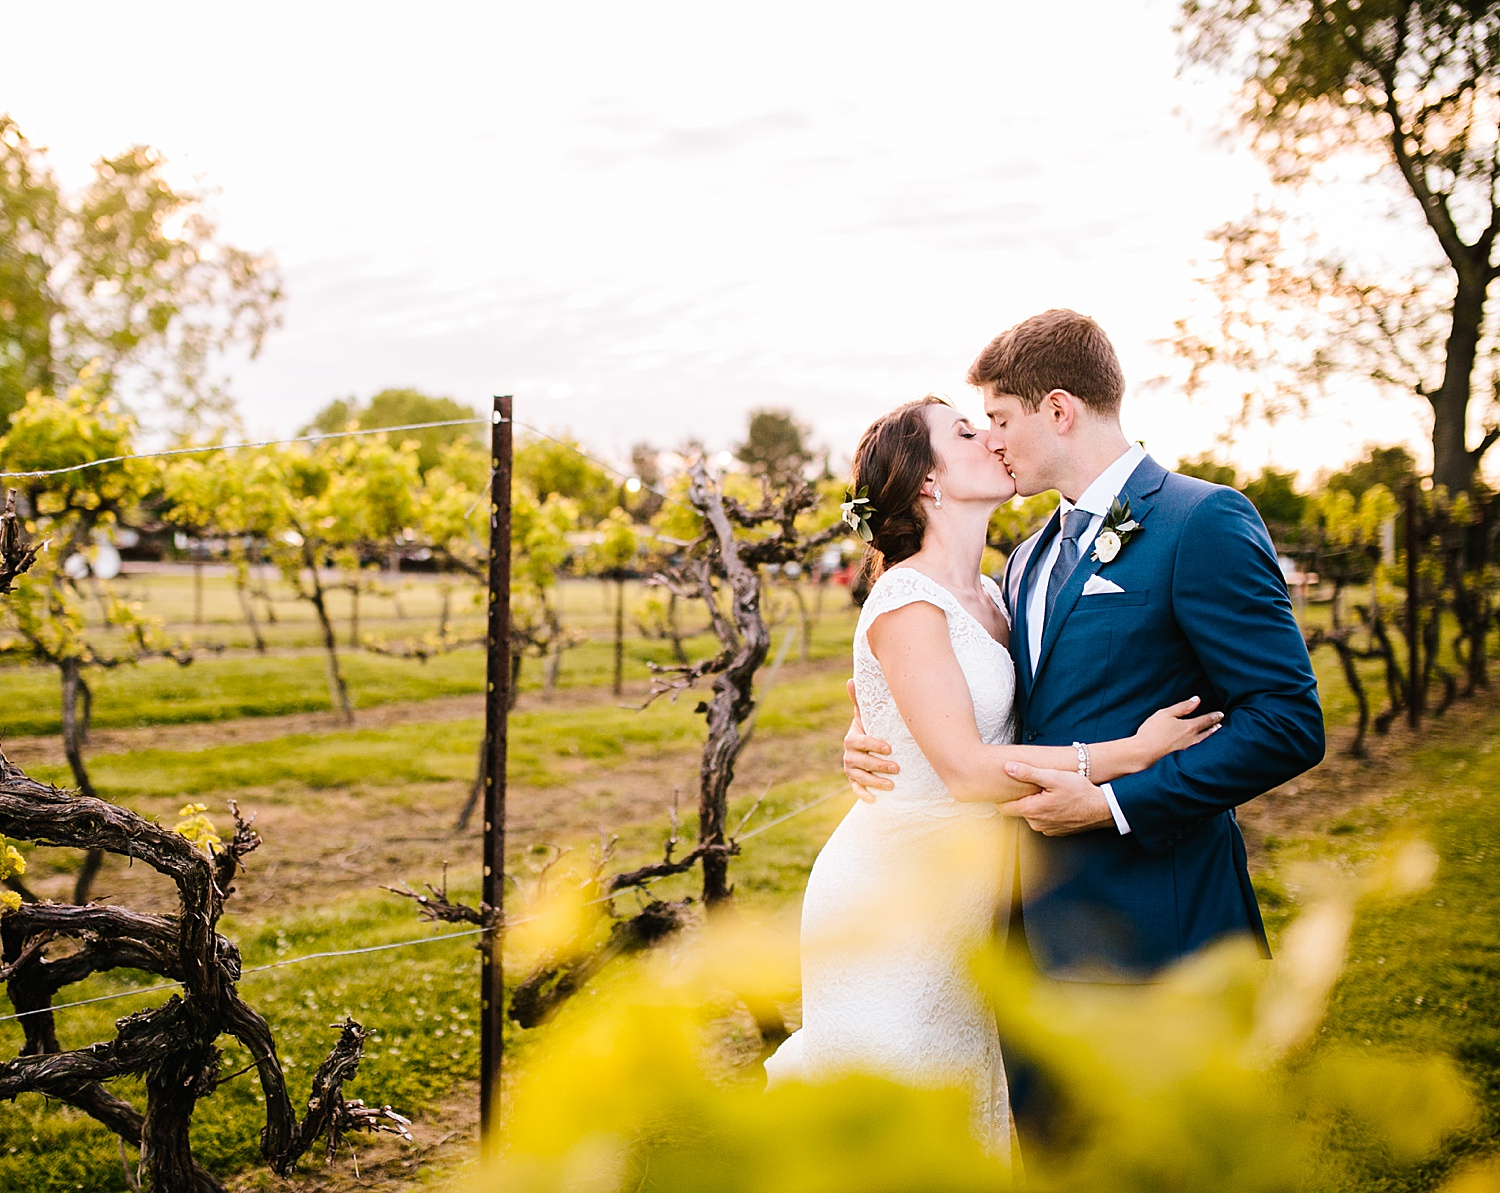 emilyaustin_rosebank_winery_newhope_farm_wedding_image112.jpg